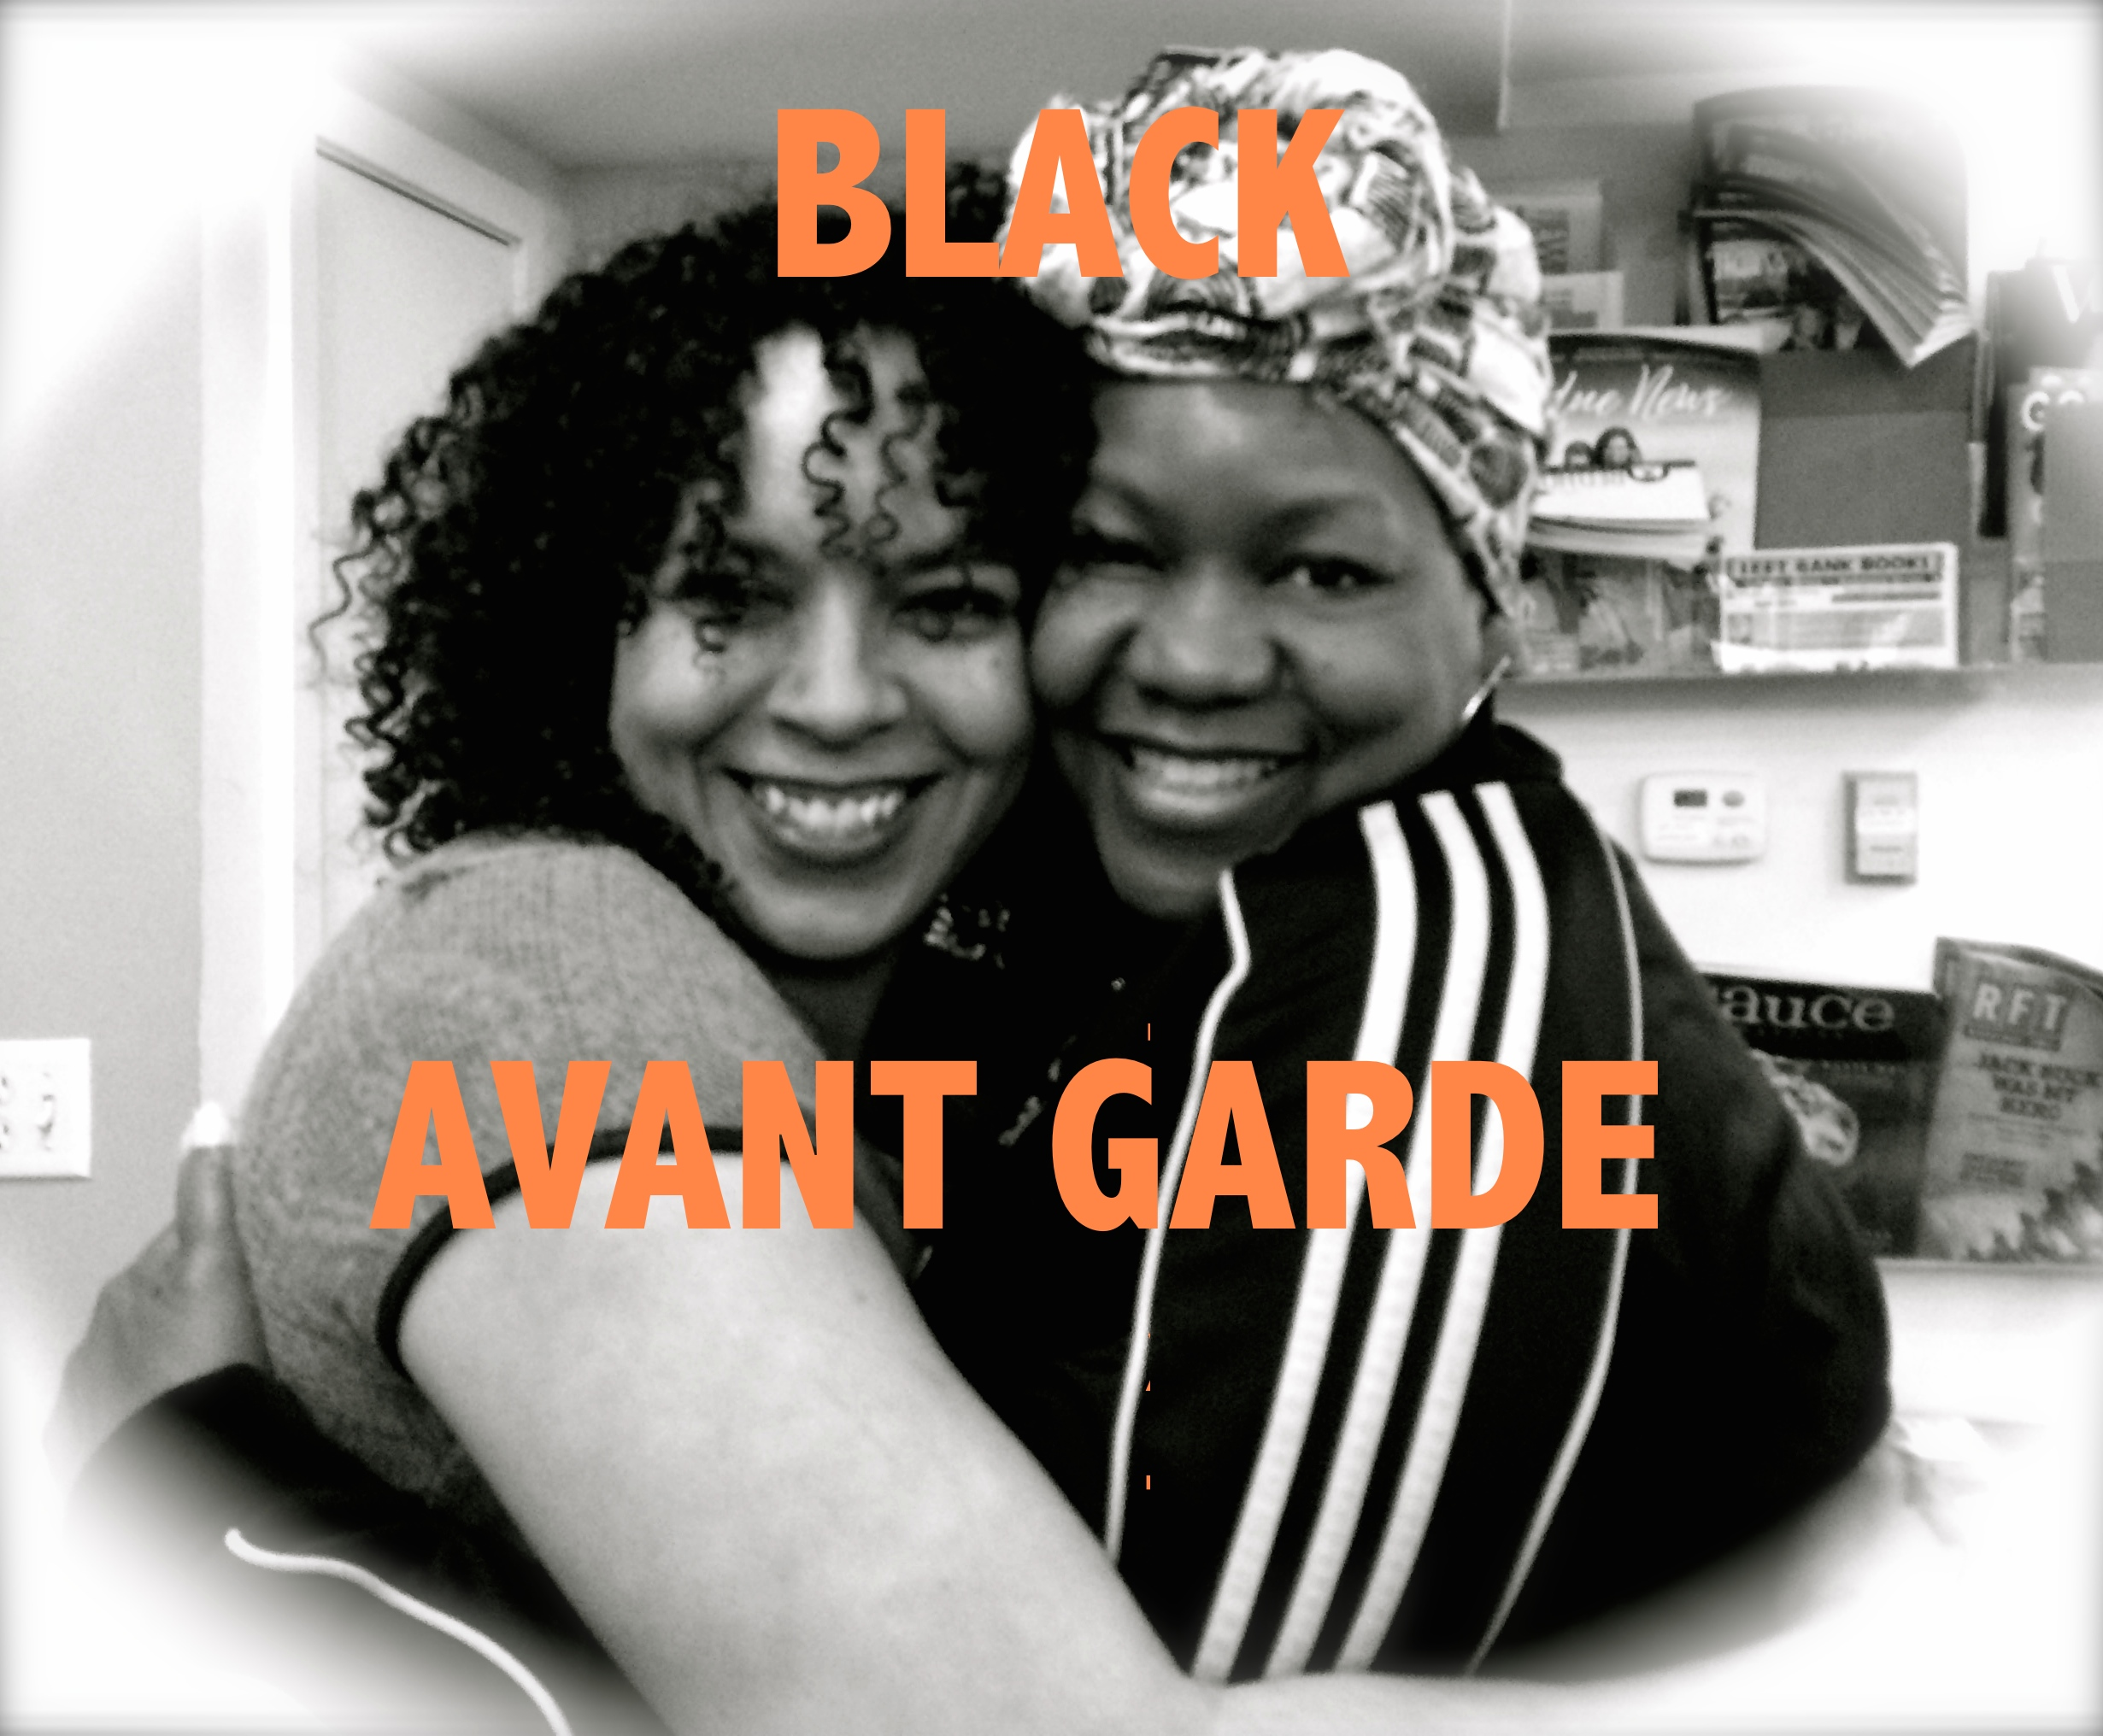 The FEMININE PRONOUN Series #12: Black Avant Garde